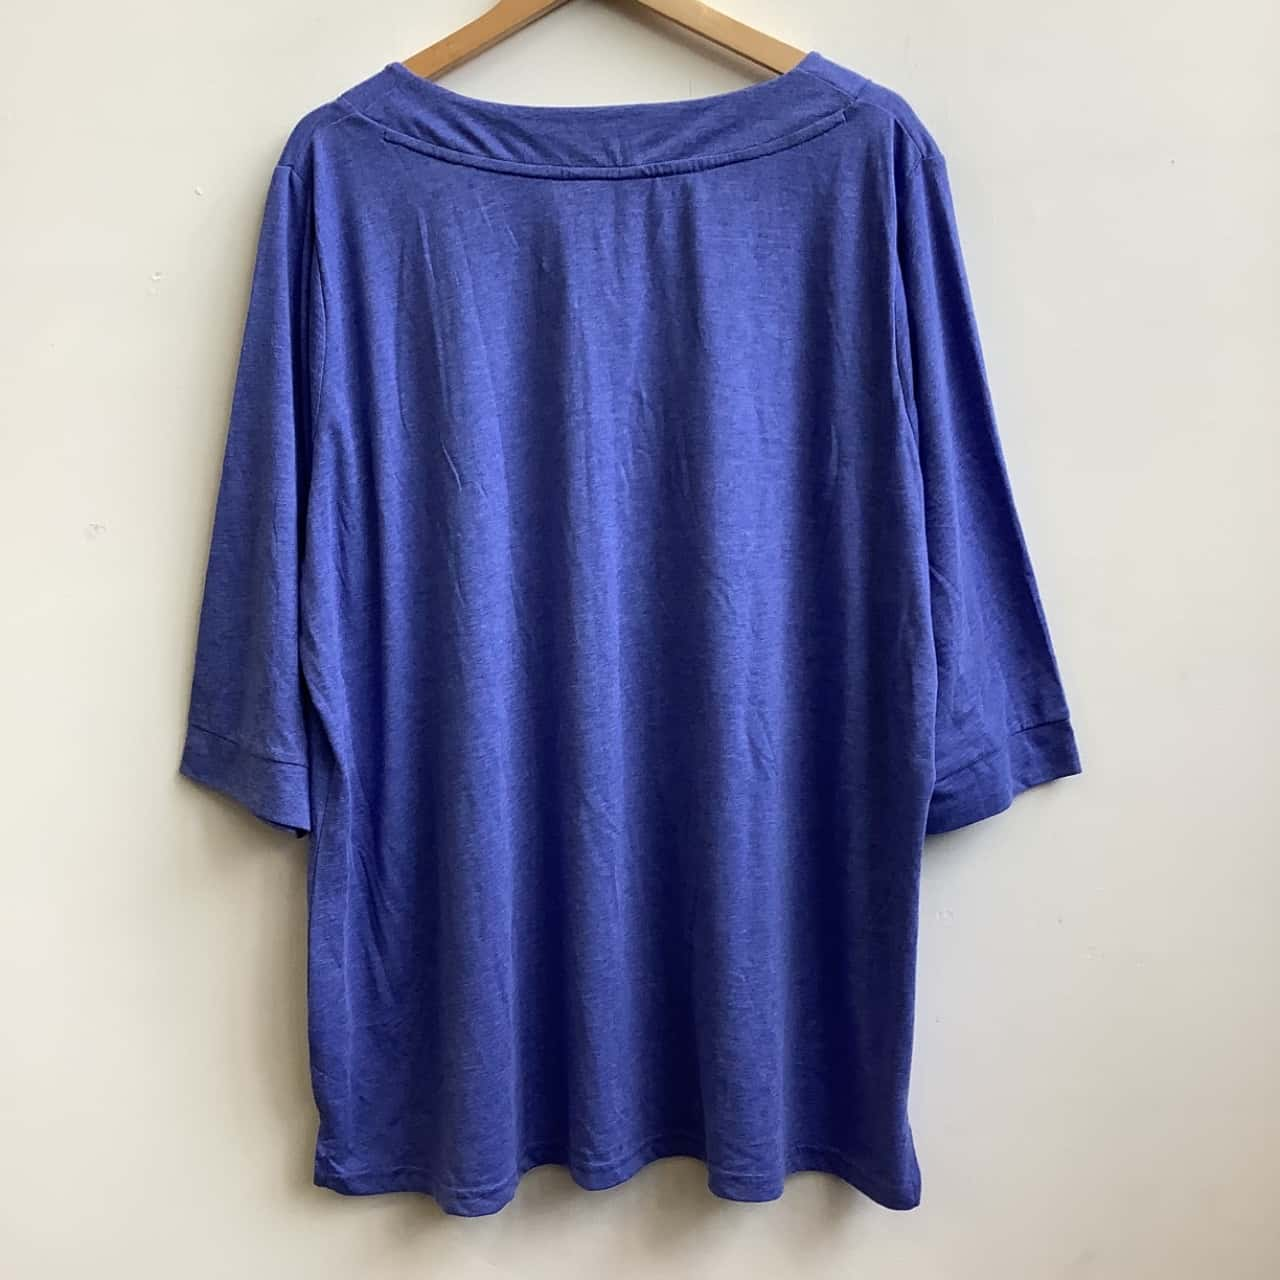 Yours  Size 26/28 Womens Blue Top BNWT